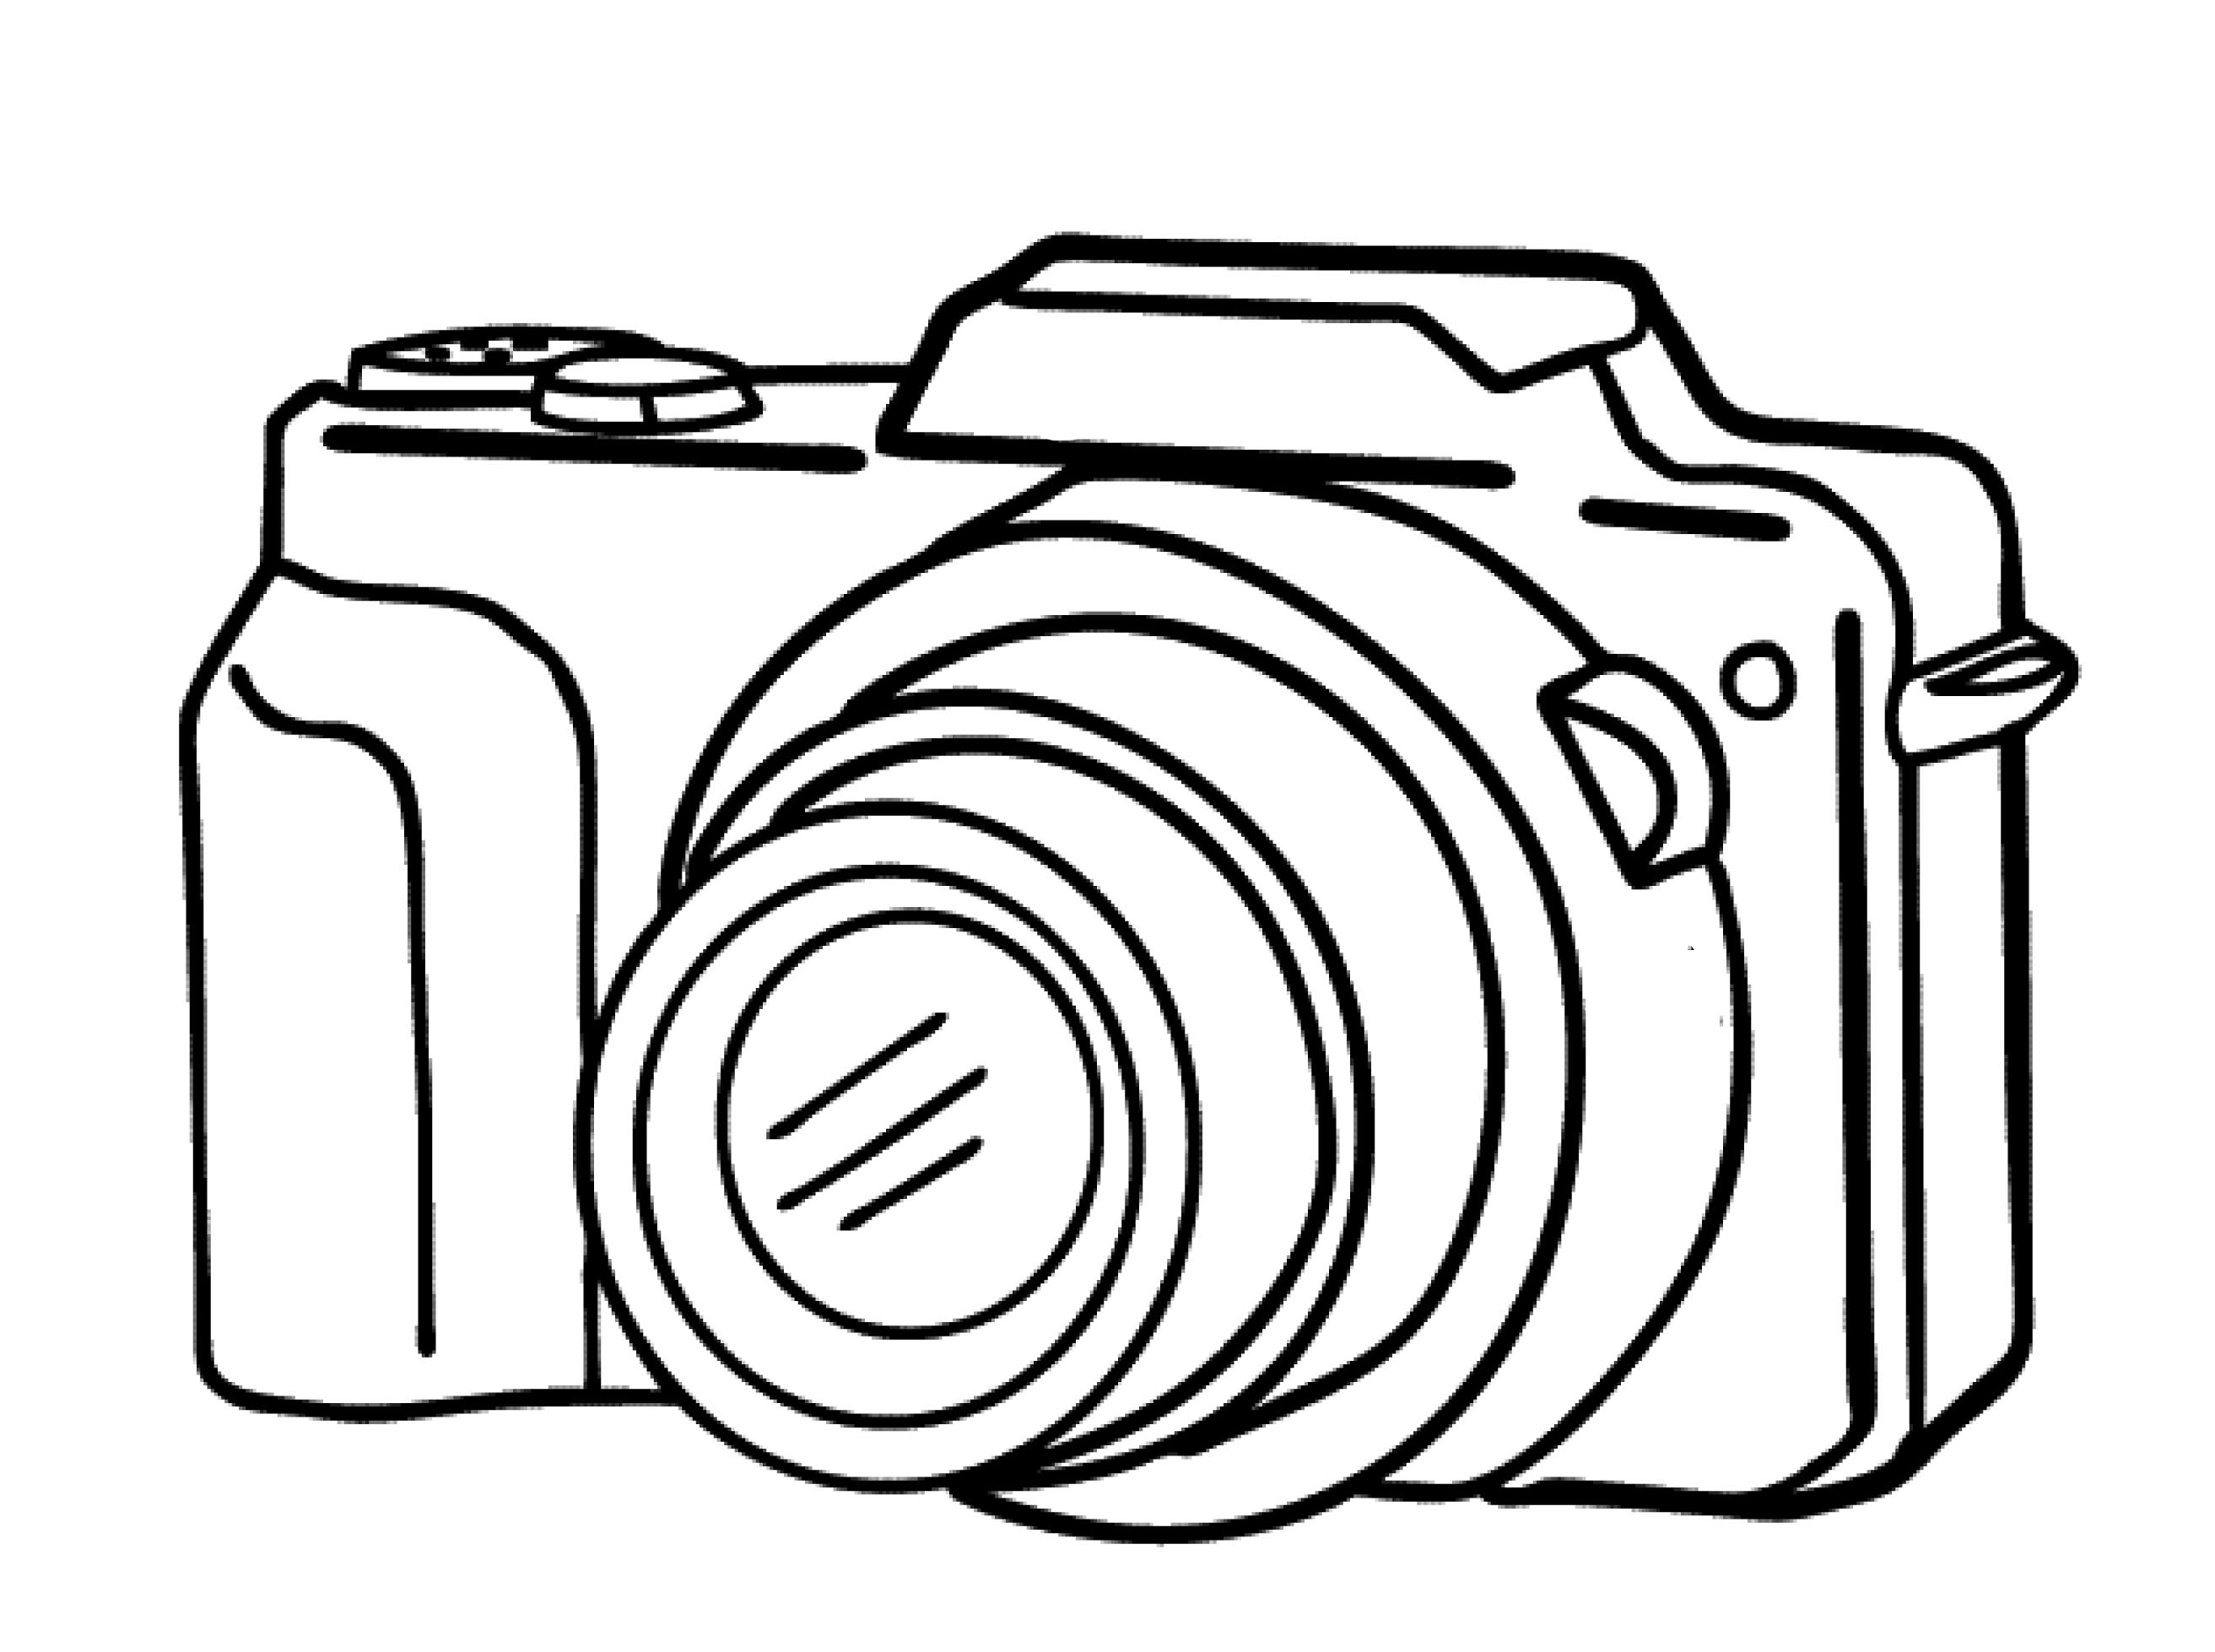 2625x1958 Learn To Master Digital Photography